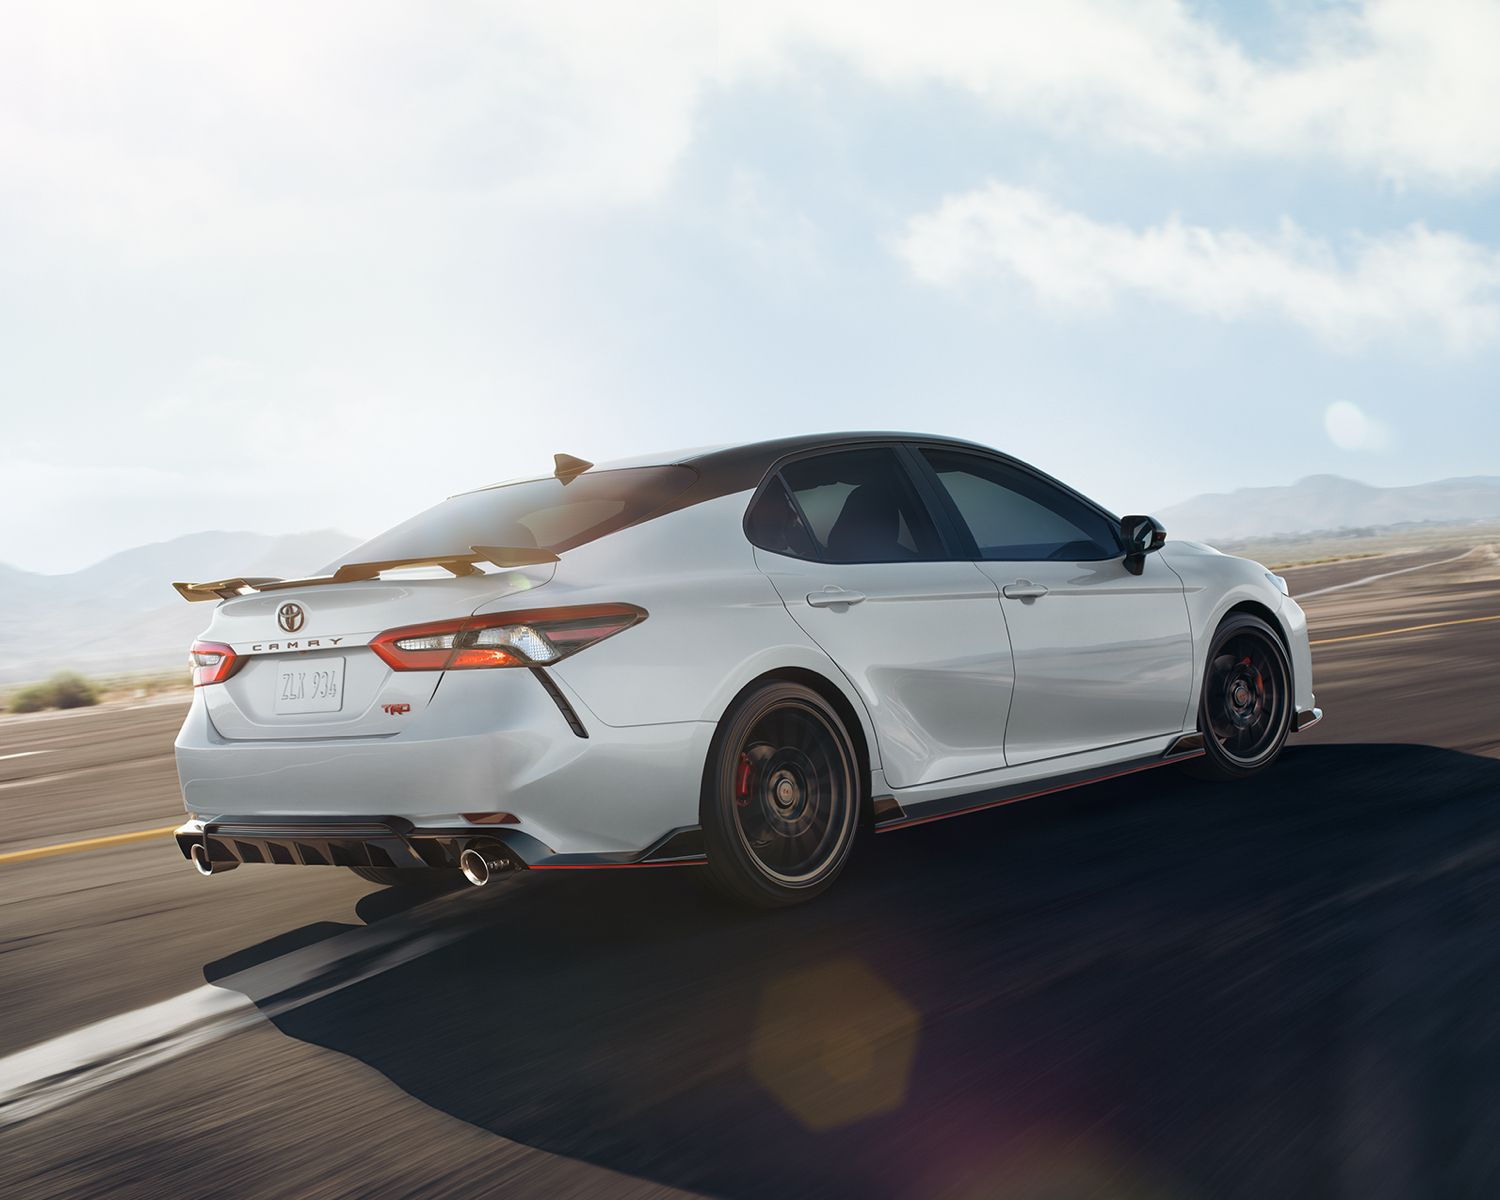 Camry XSE V6 FWD TRD shown in Ice Edge with Black Roof